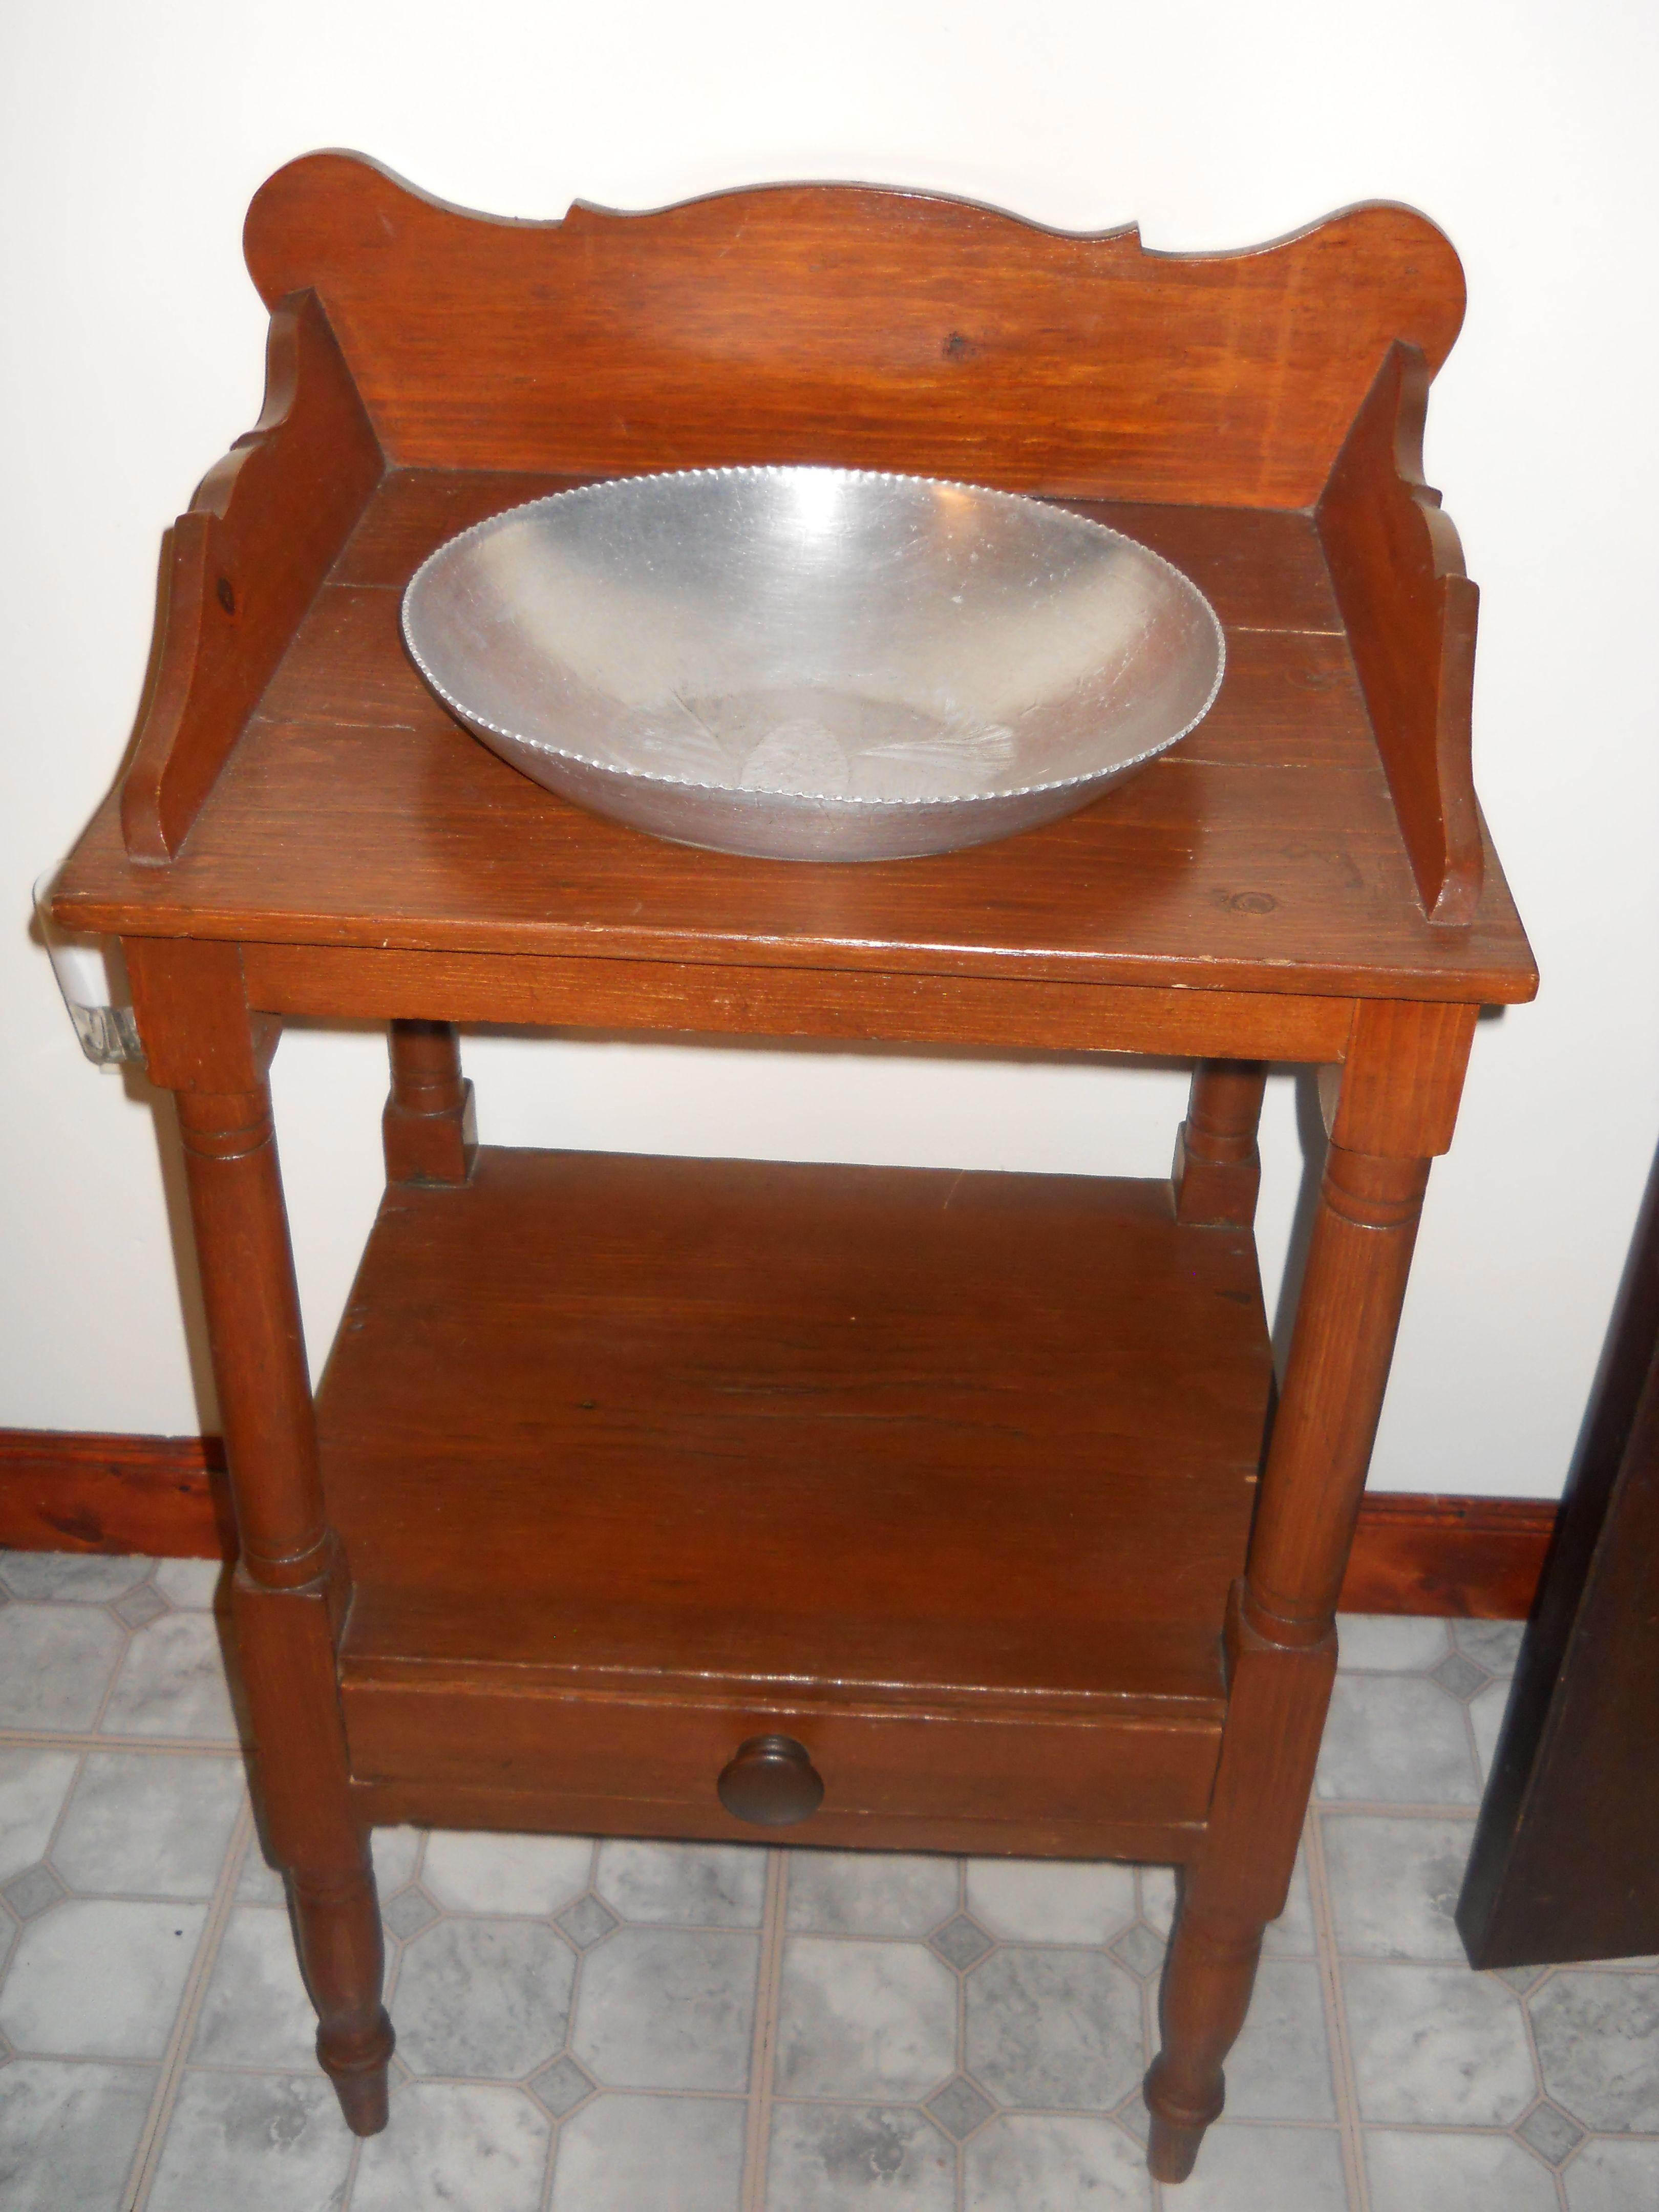 My new wash stand Now I m on the hunt for a pitcher and bowl